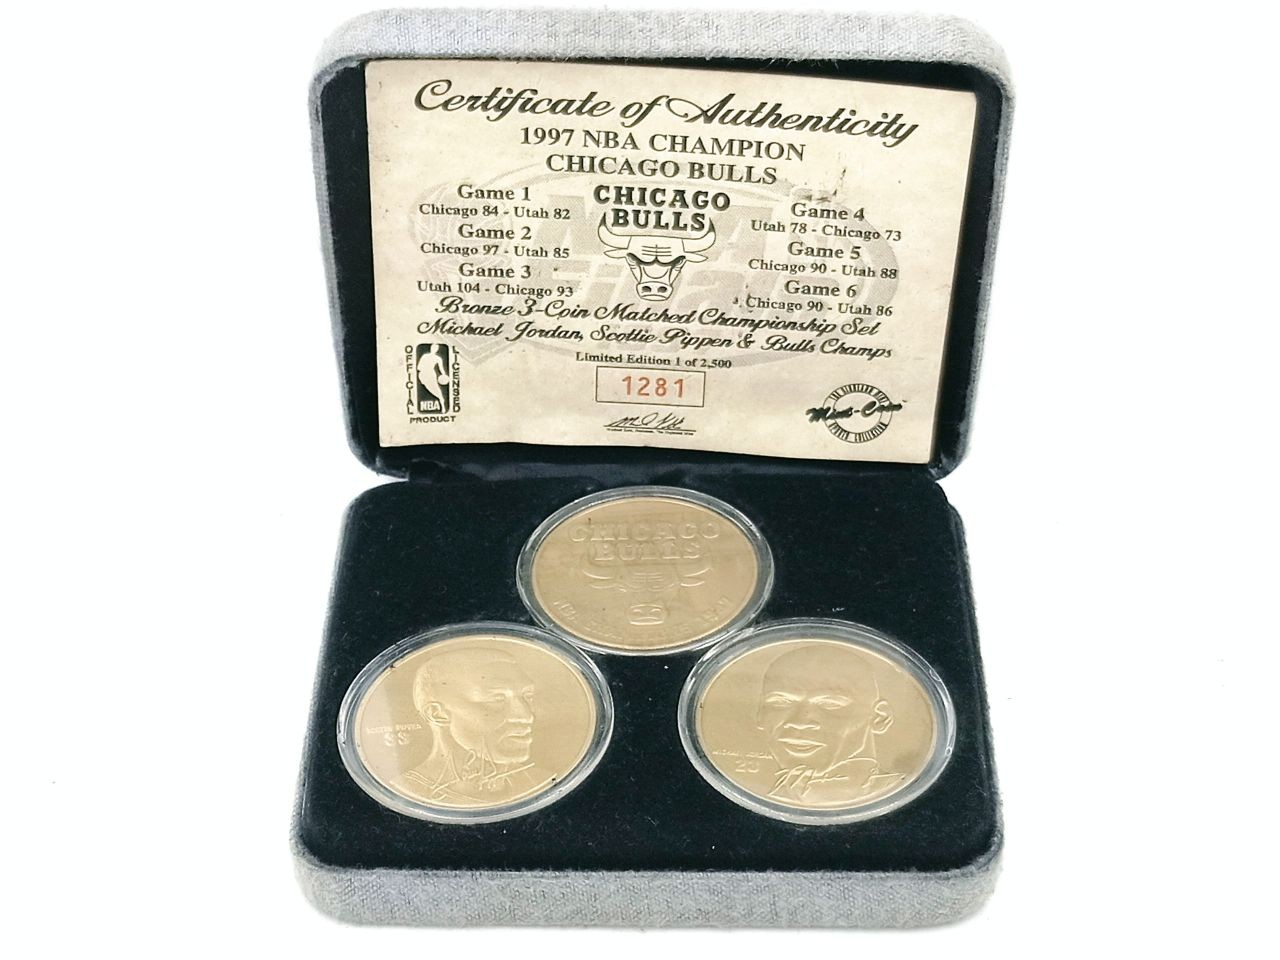 3 coins Certificate of Authenticity 1997 NBA Champion- chicago bulls